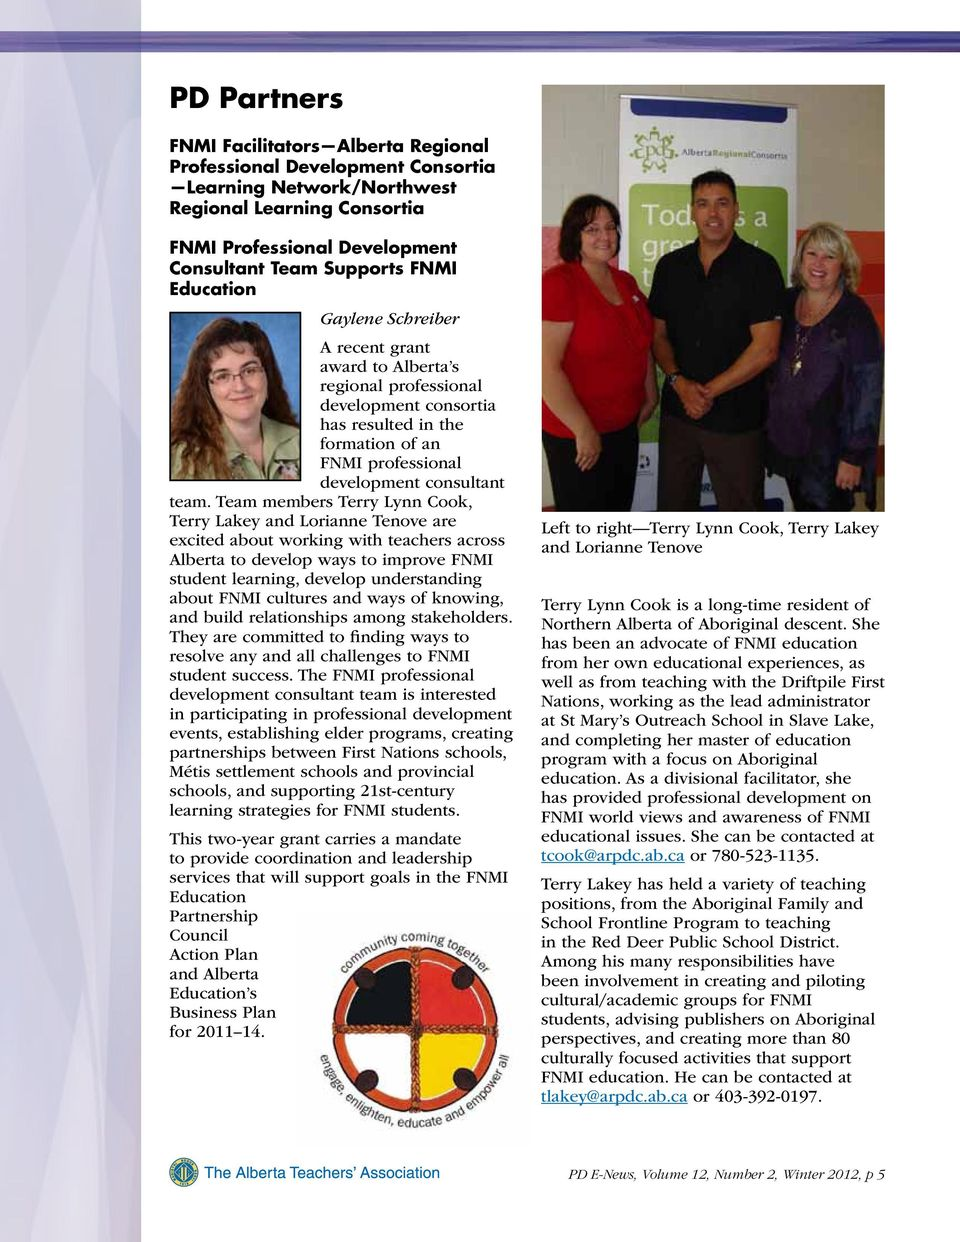 Team members Terry Lynn Cook, Terry Lakey and Lorianne Tenove are excited about working with teachers across Alberta to develop ways to improve FNMI student learning, develop understanding about FNMI